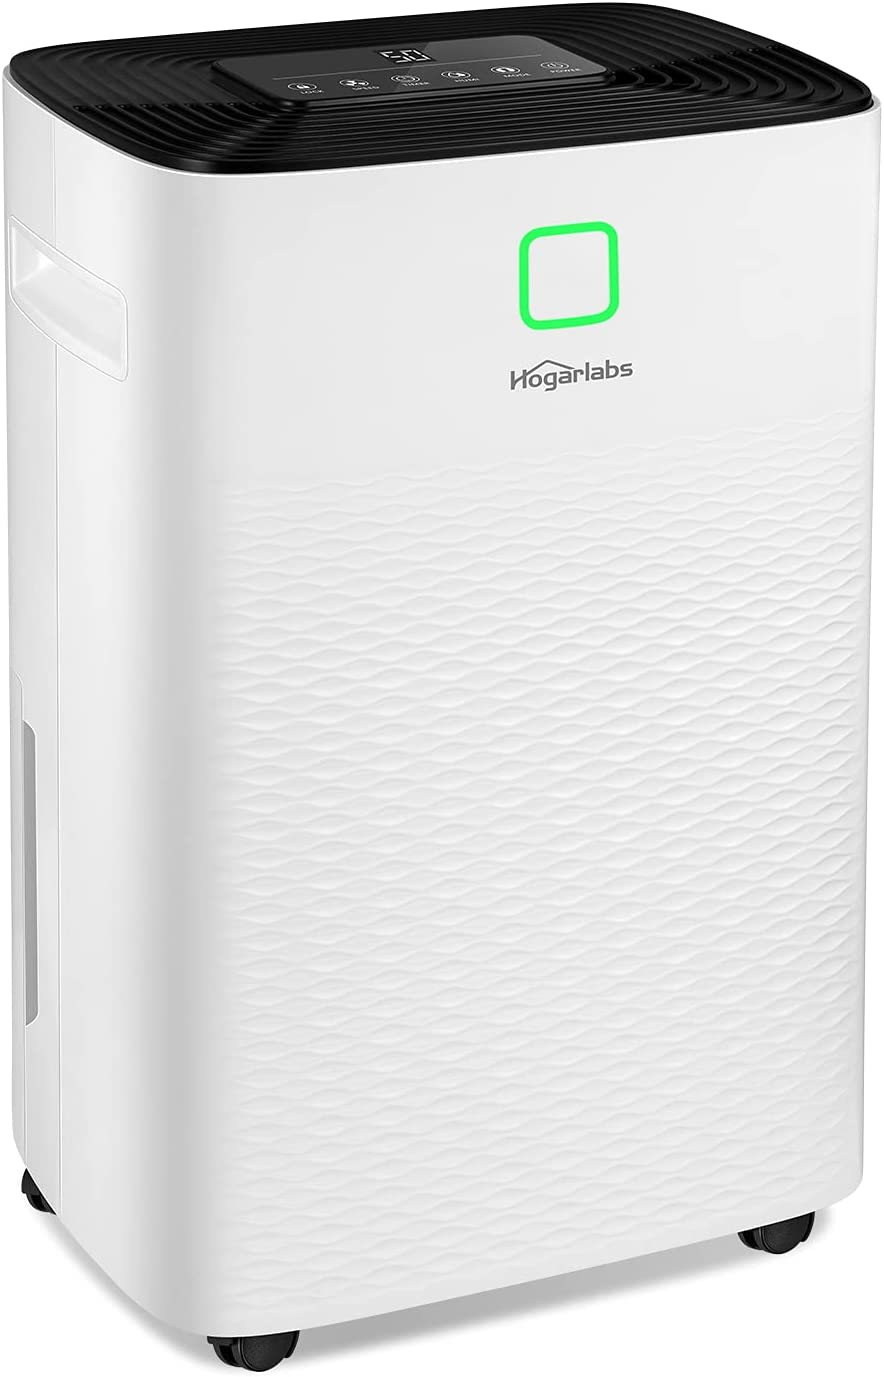 HOGARLABS 4000 Sq Ft 50 Pint Dehumidifier for Home and Basements, Dehumidifier with Drain Hose for Medium to Large Room, Multi-function Dehumidifier with Digital Control Panel and 24 Hours Timer